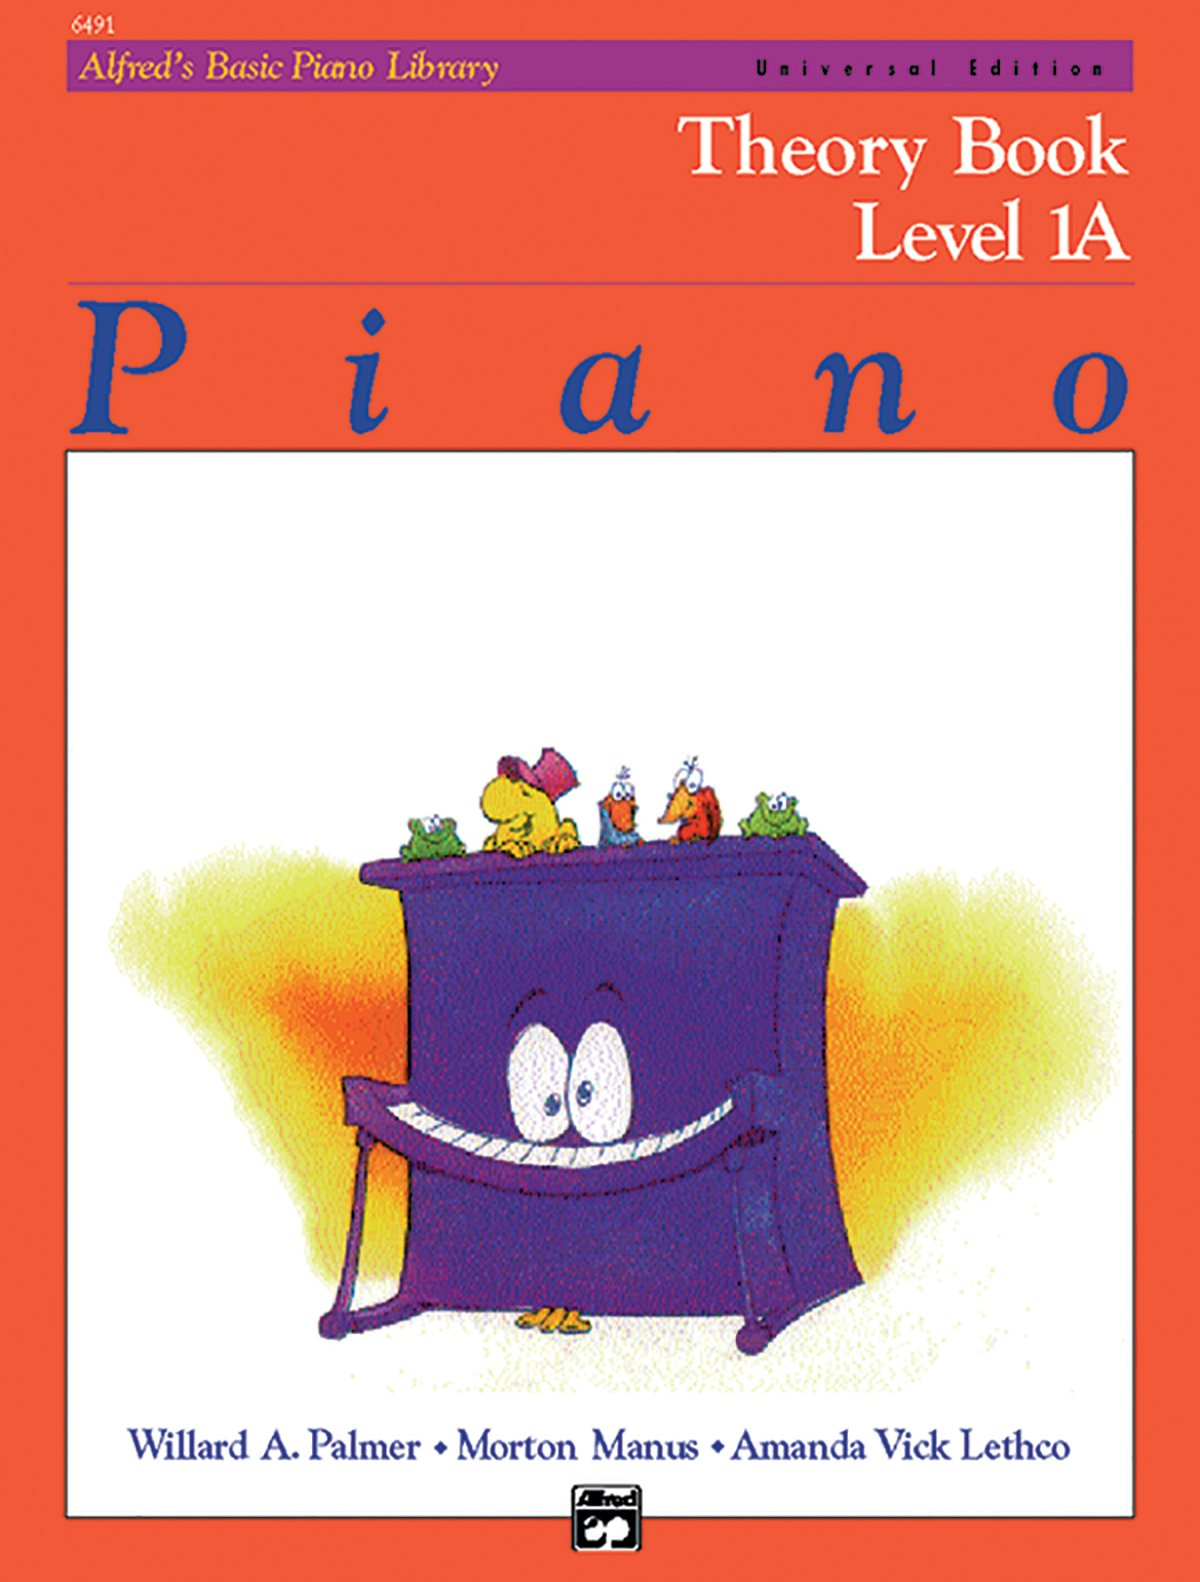 Alfred's Basic Piano Course: Theory Book, Level 1A